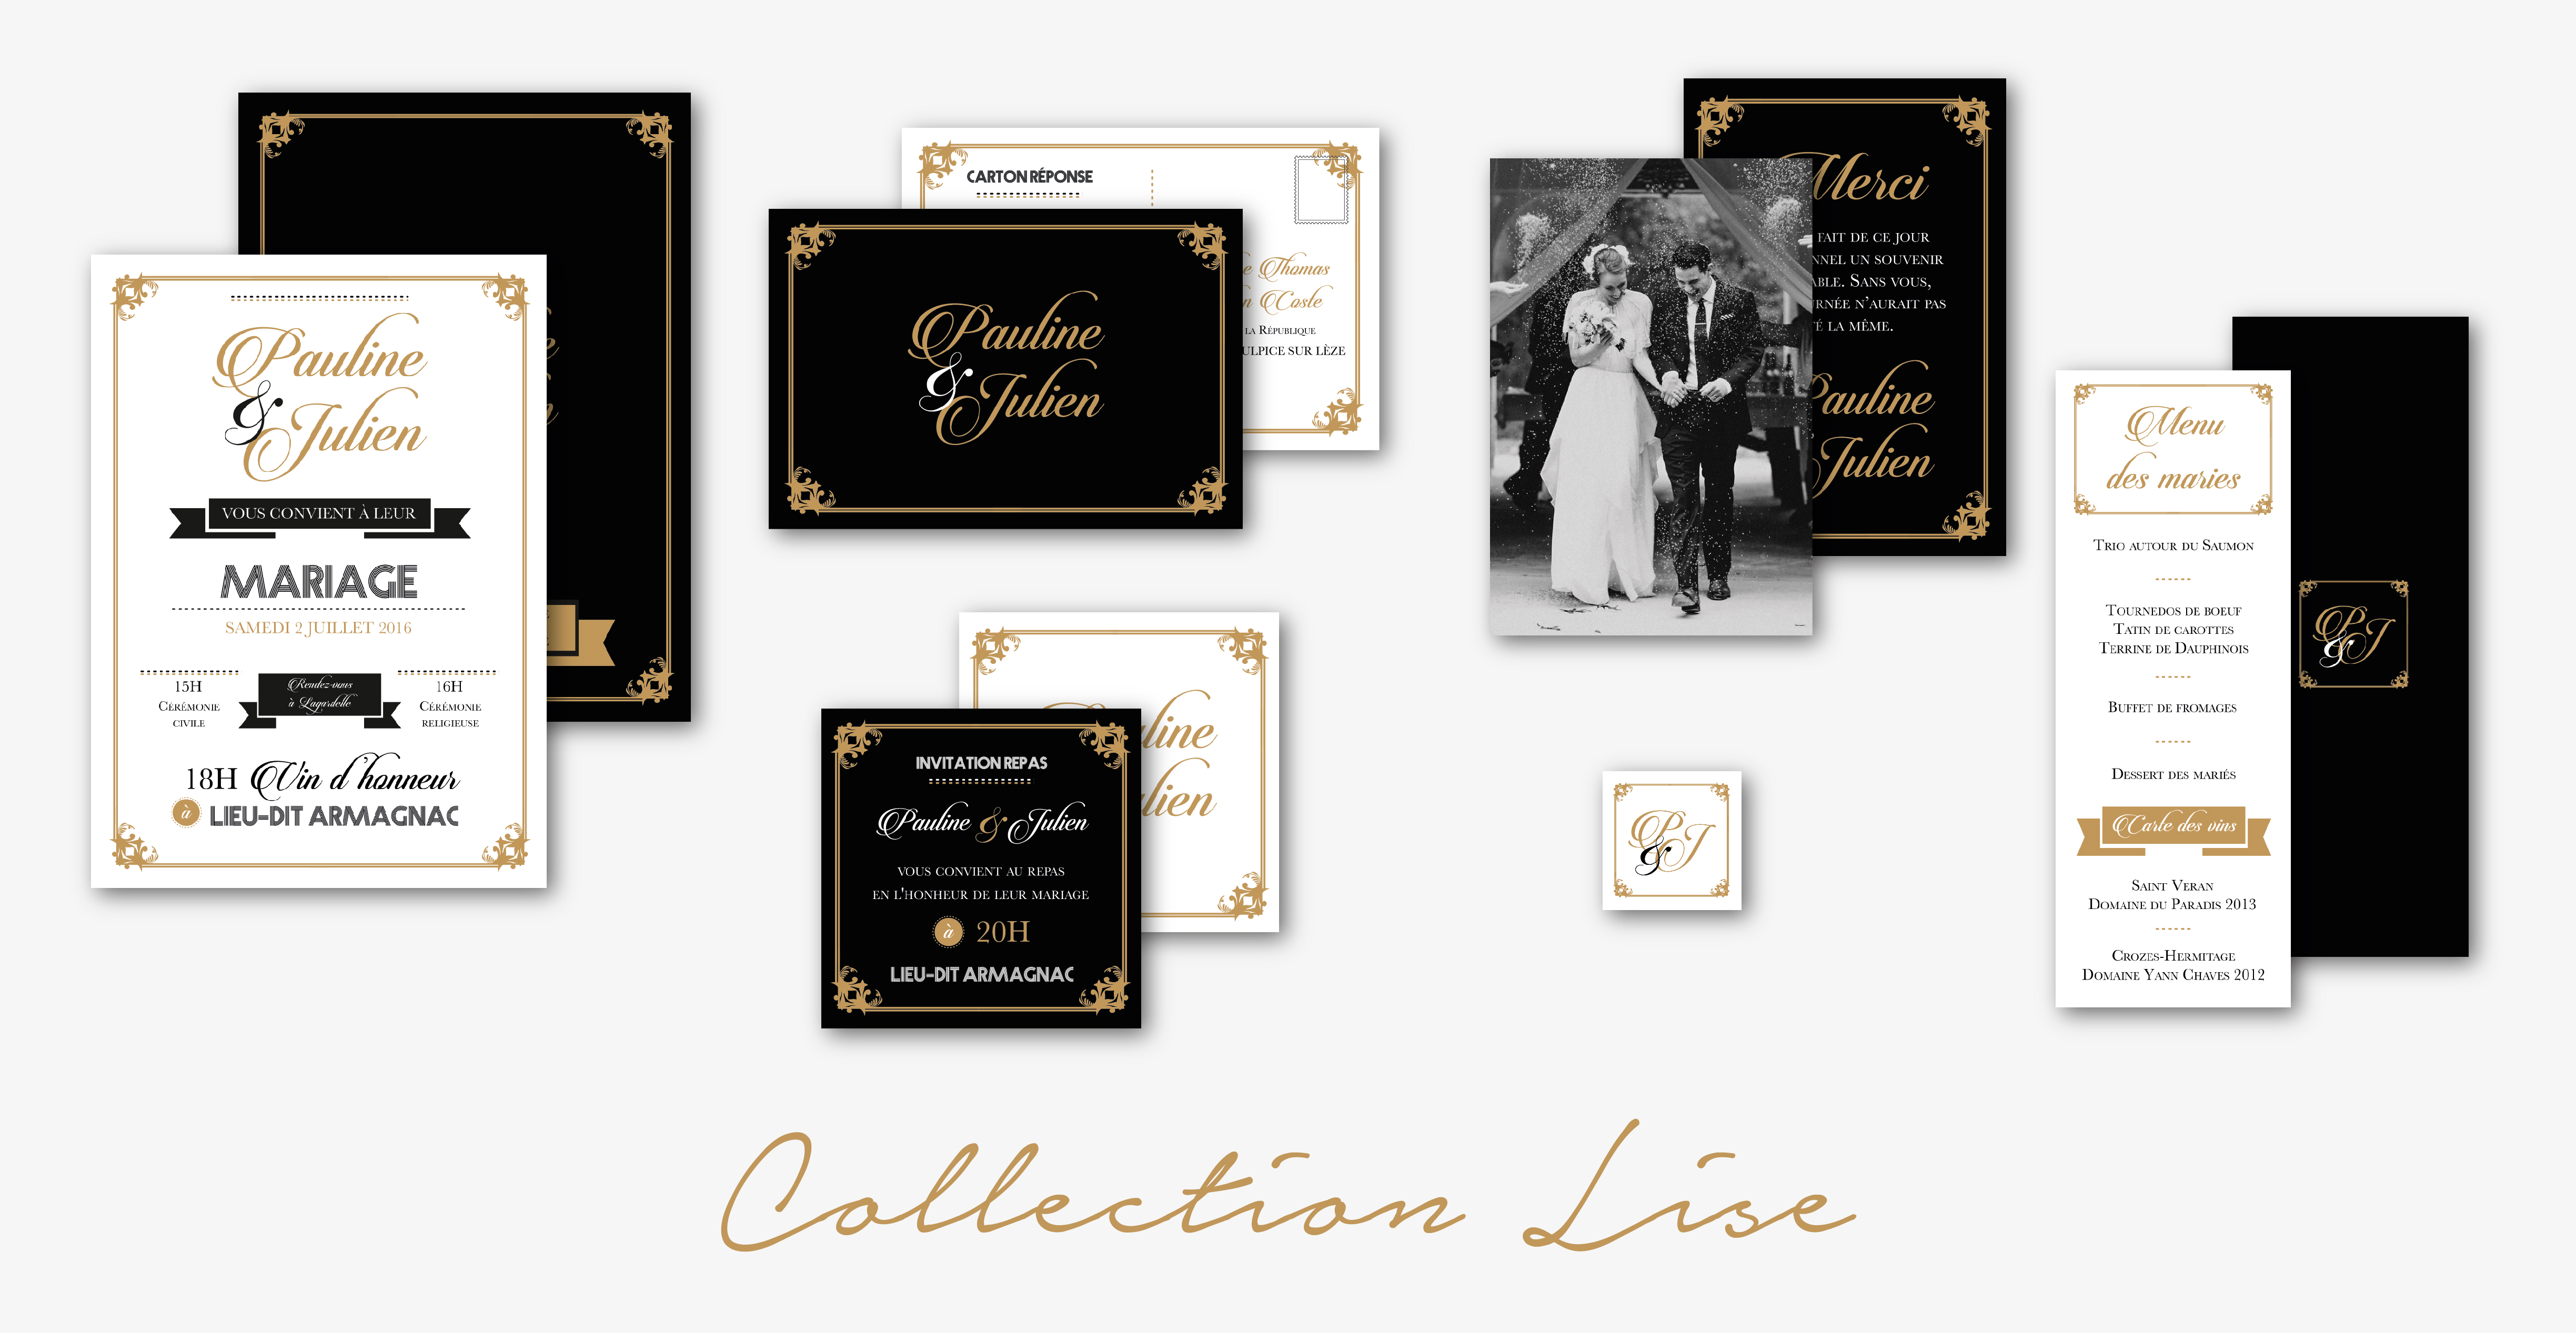 collection-faire-part-mariage-gatsby